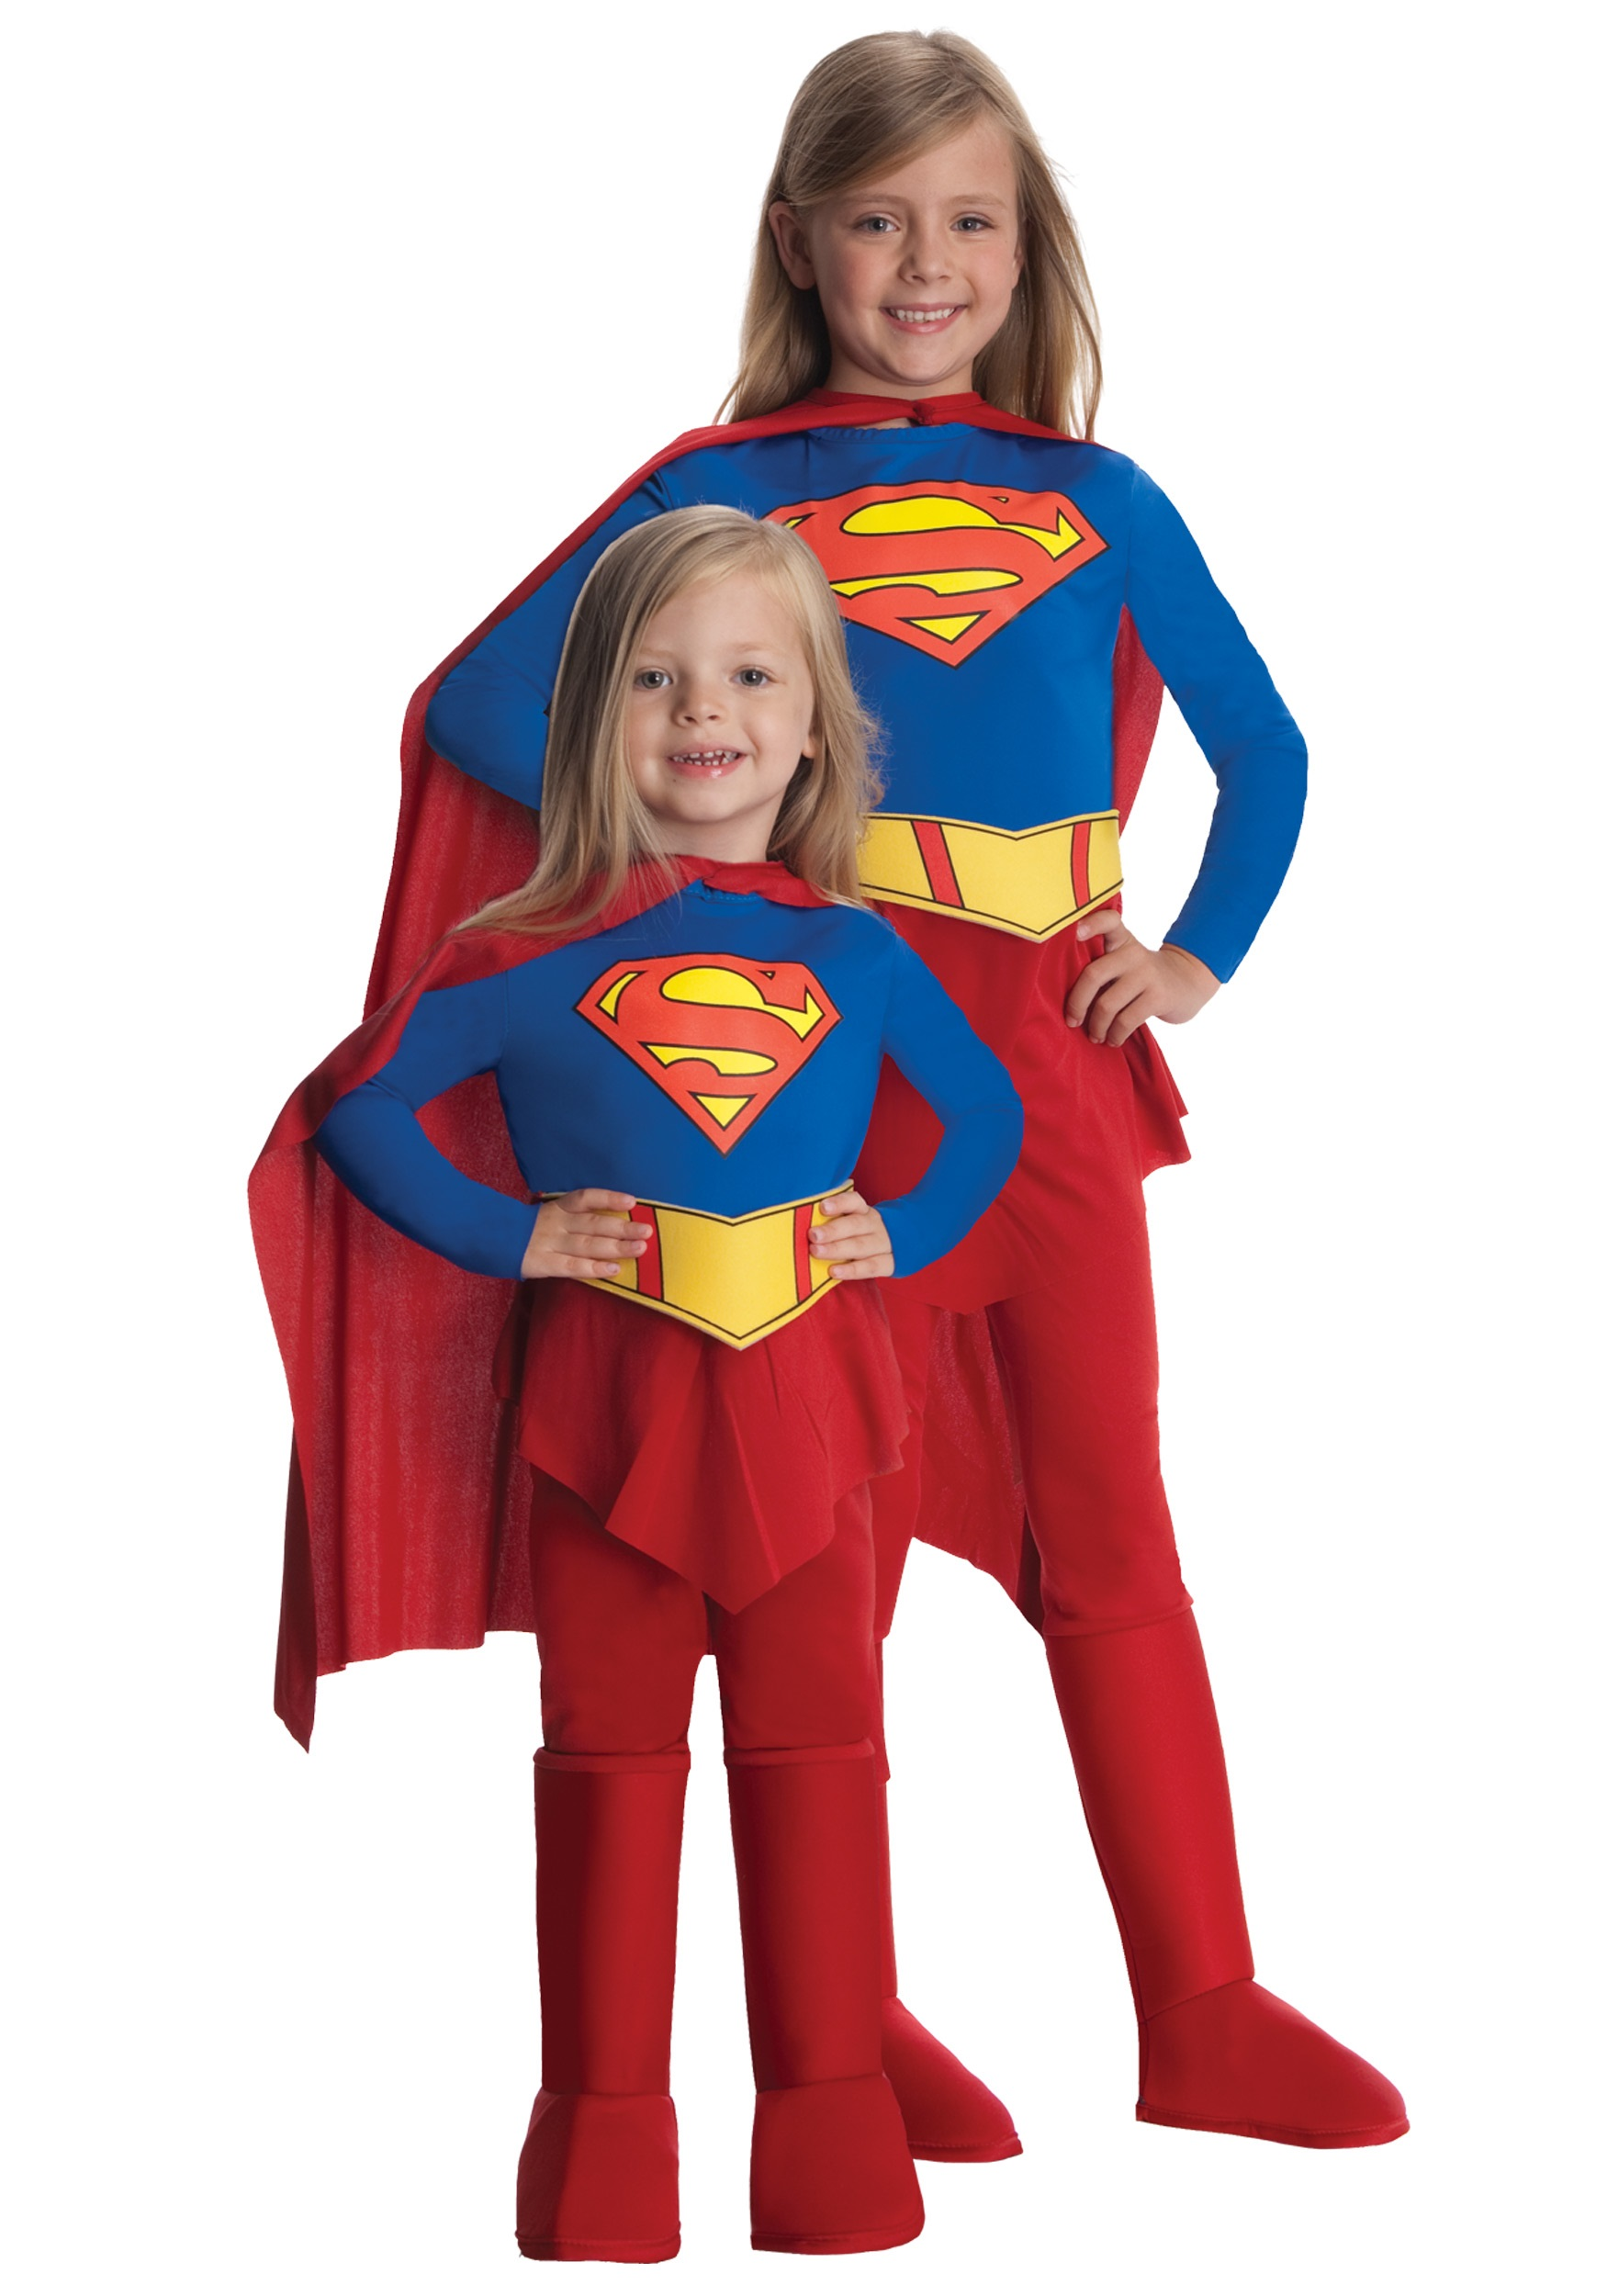 Child Supergirl Costume  sc 1 st  Halloween Costumes & Child Supergirl Costume - Halloween Costumes